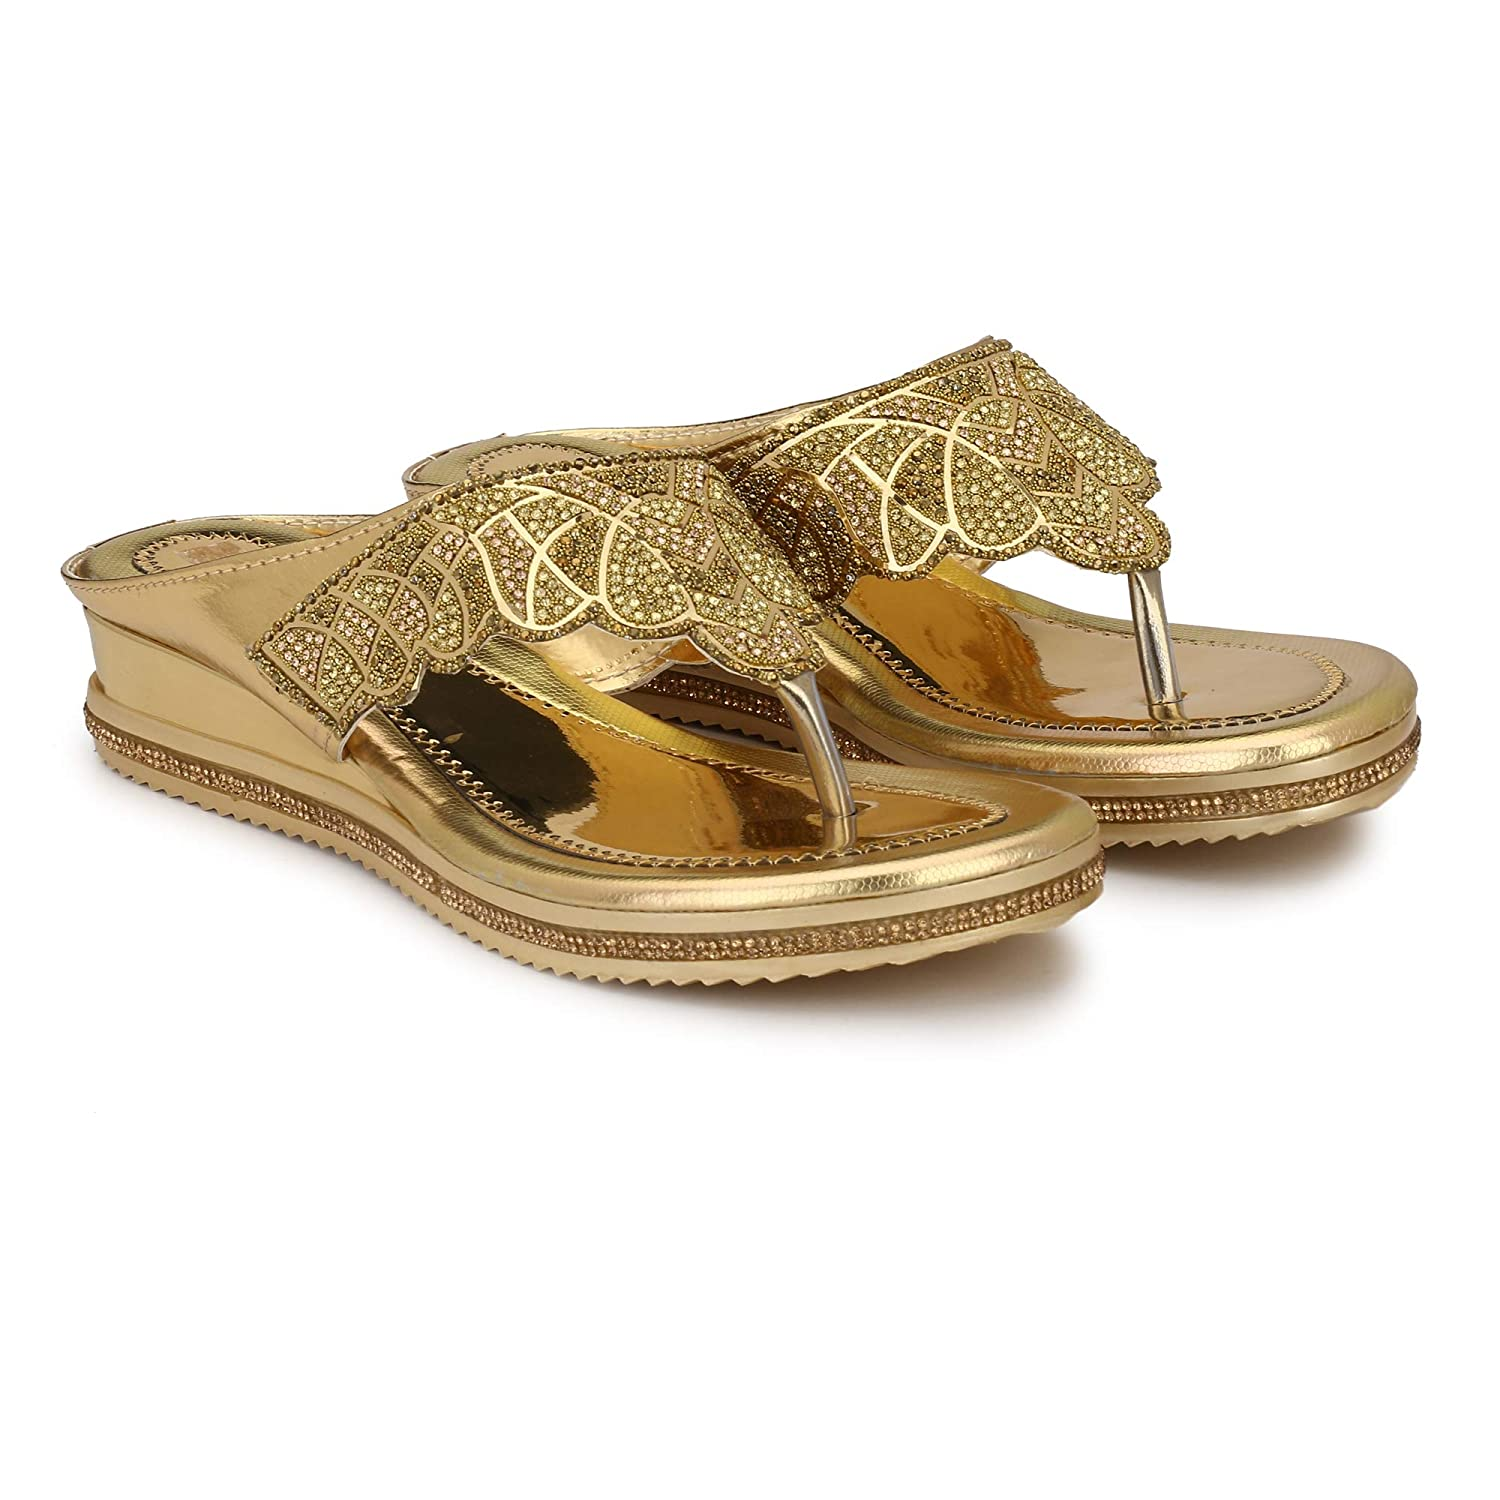 7a8f450ec MGZ Golden Bridal Flat Party Wear Flip Flop Chappal for Girls Women - UK7   Buy Online at Low Prices in India - Amazon.in